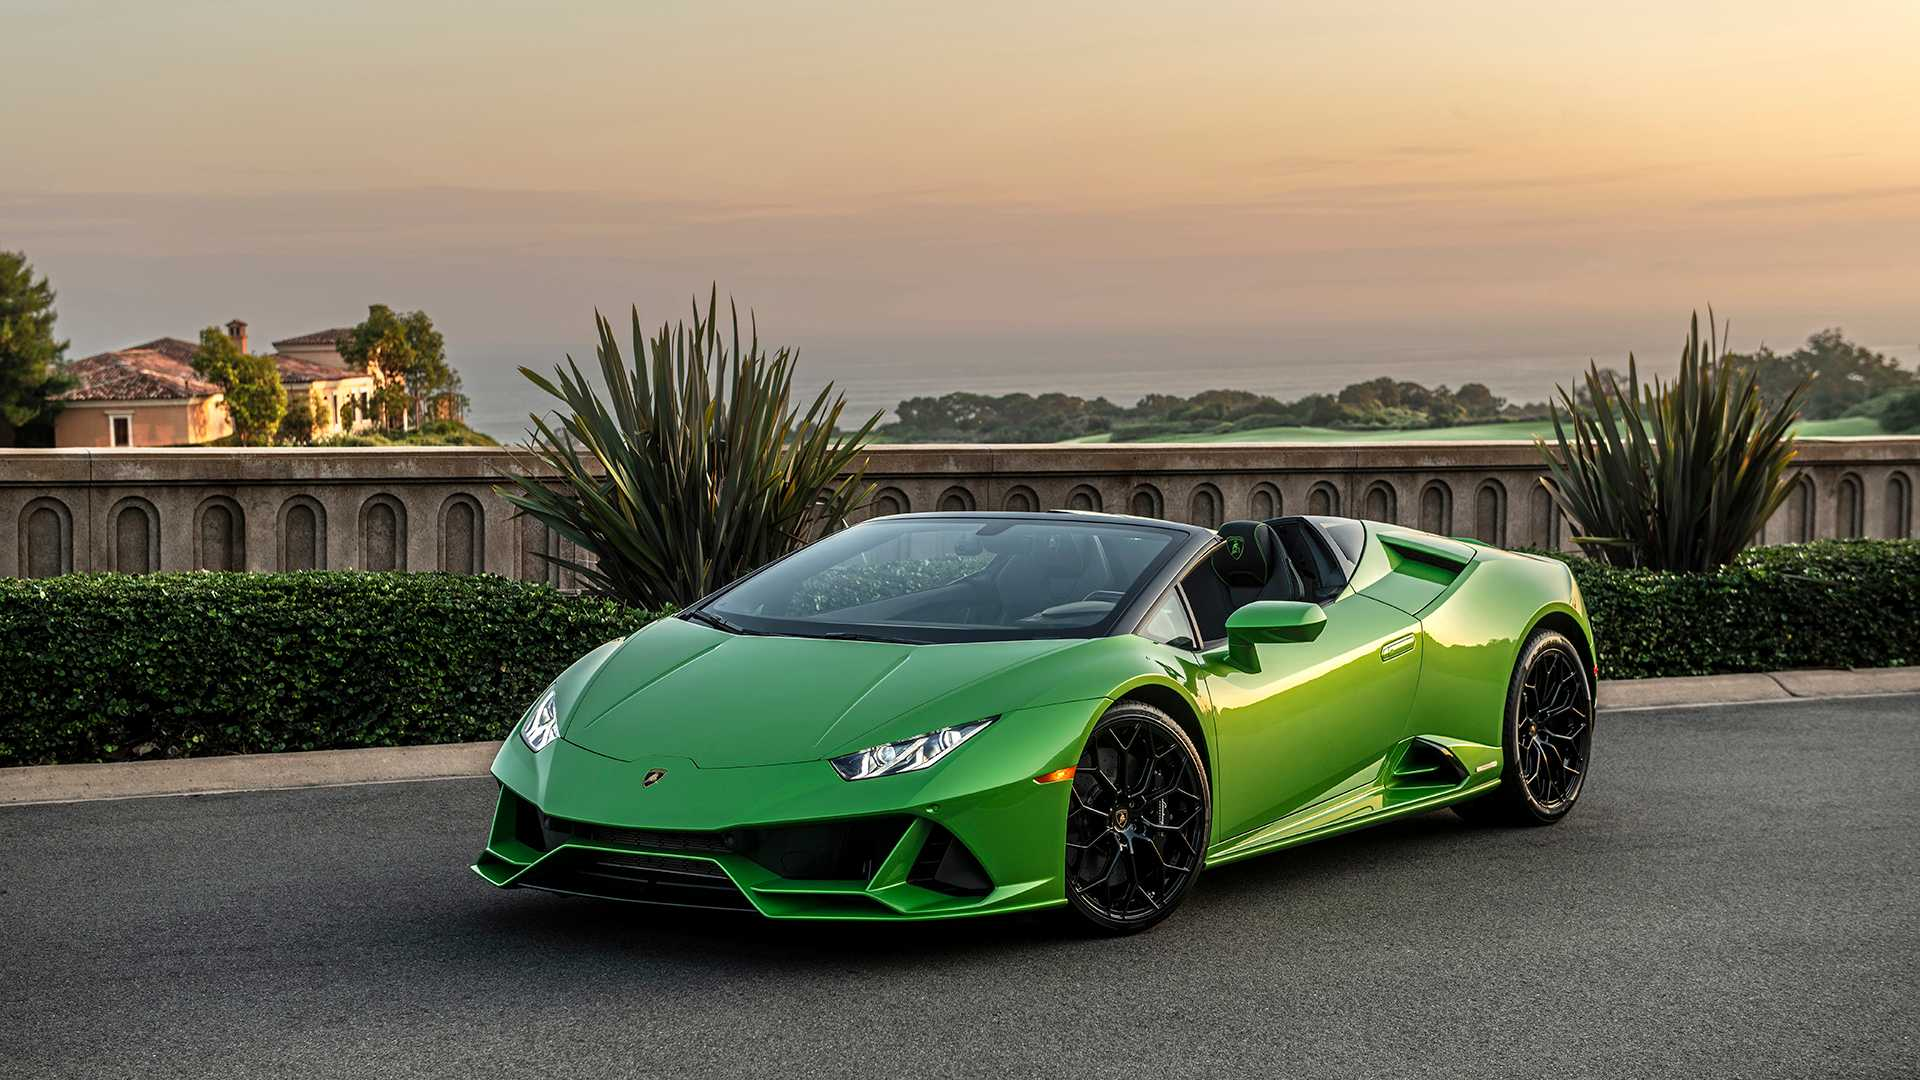 2020 Lamborghini Huracan Evo Spyder First Drive Open,Air